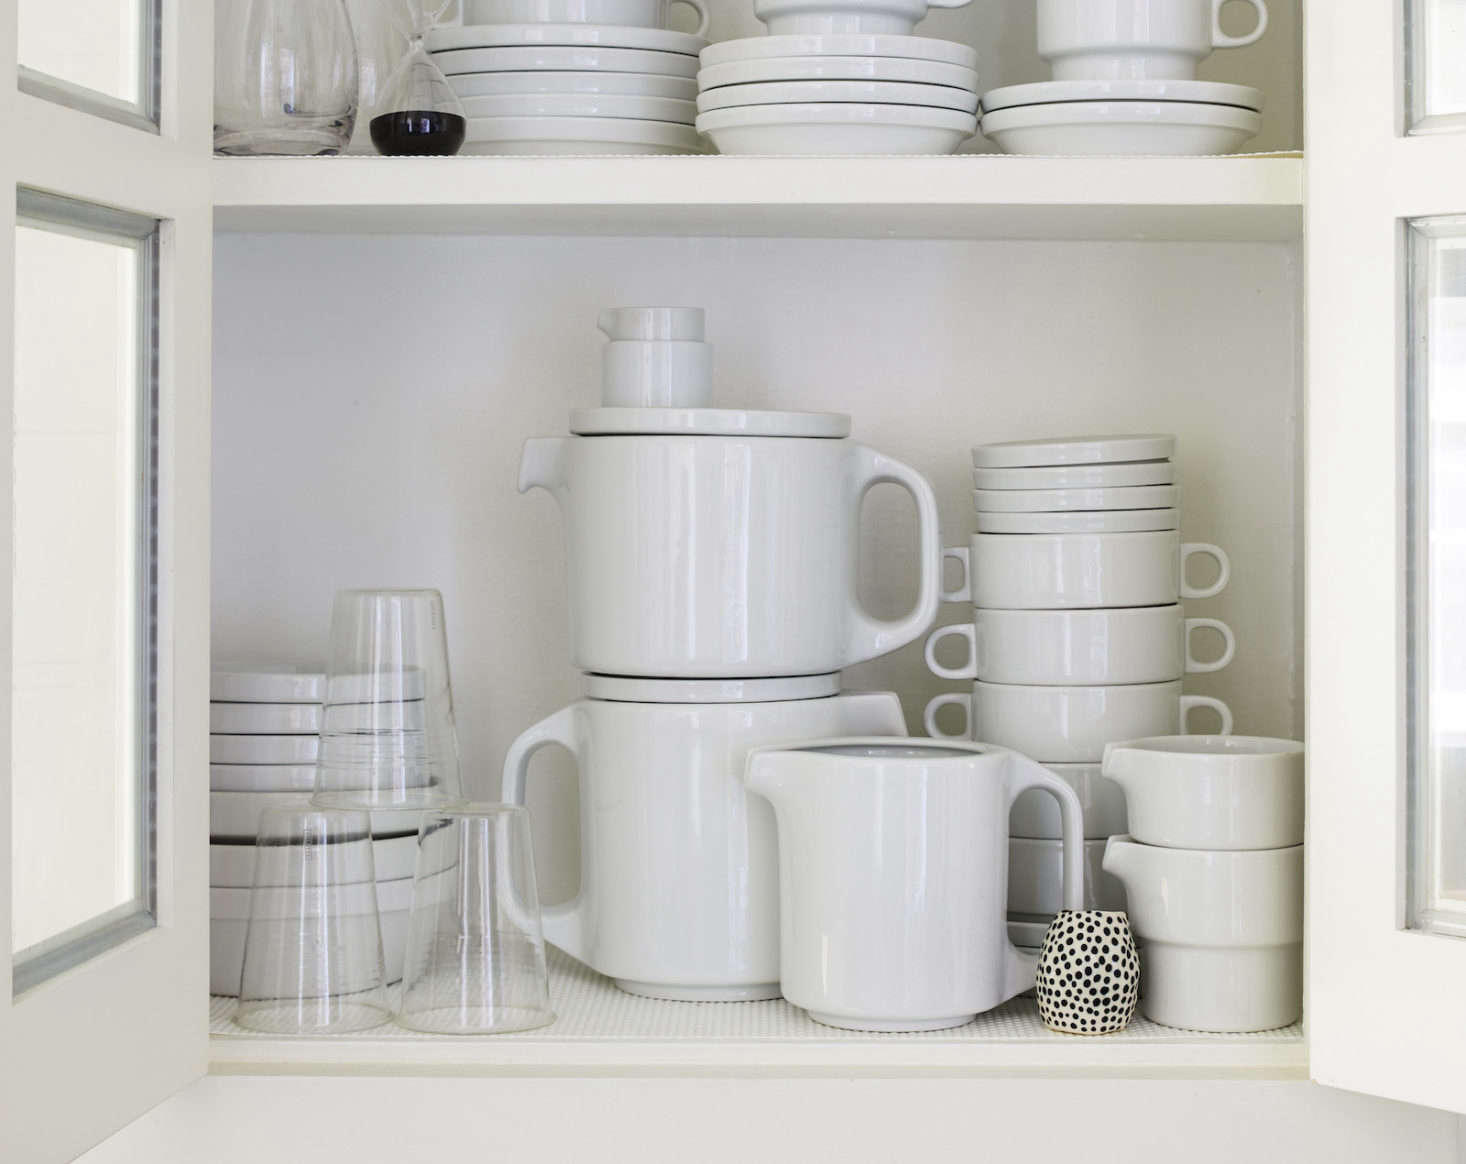 Axe is an avid collector of stackable TC100 tableware byHansRoericht and has amassed quite the collection over the years. The design is part of the Museum of Modern Art's permanent collection.